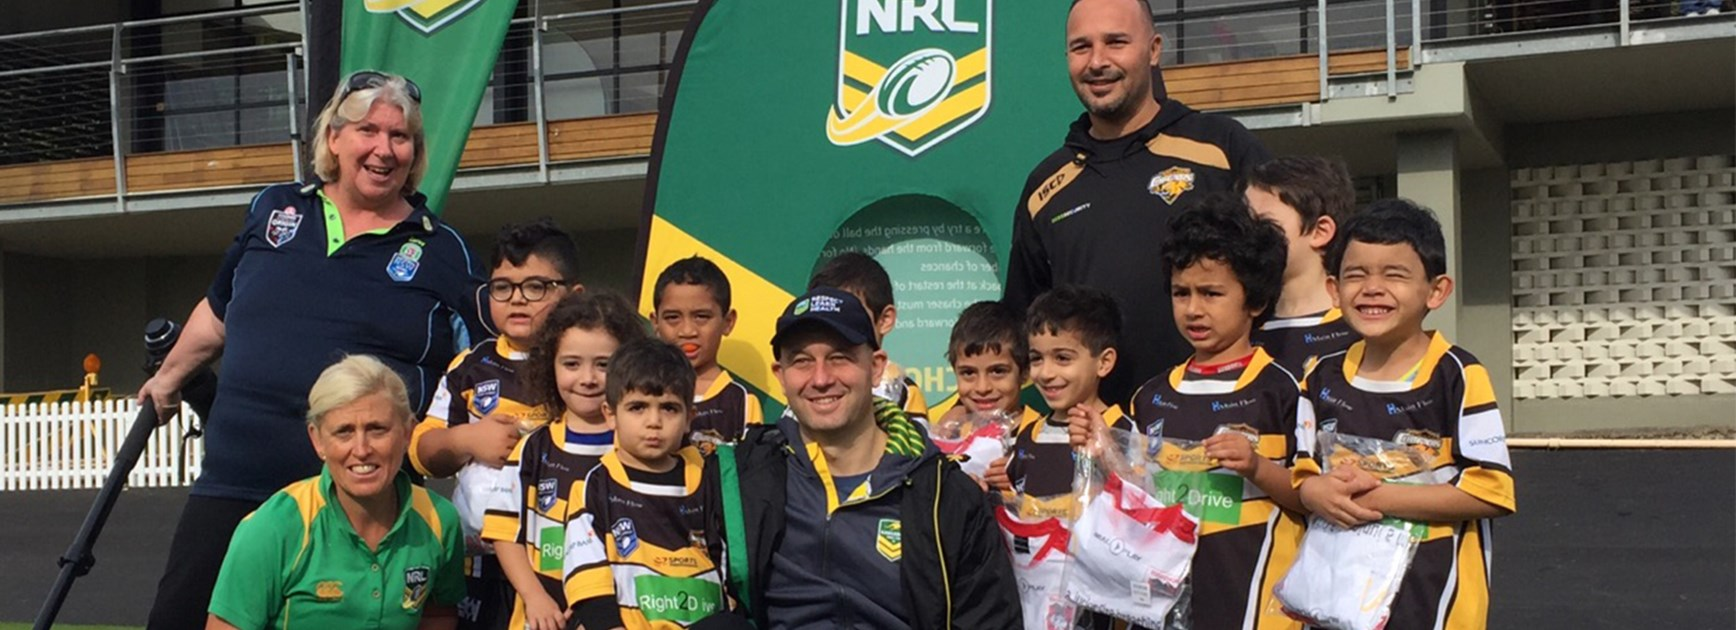 NRL heads back to the juniors